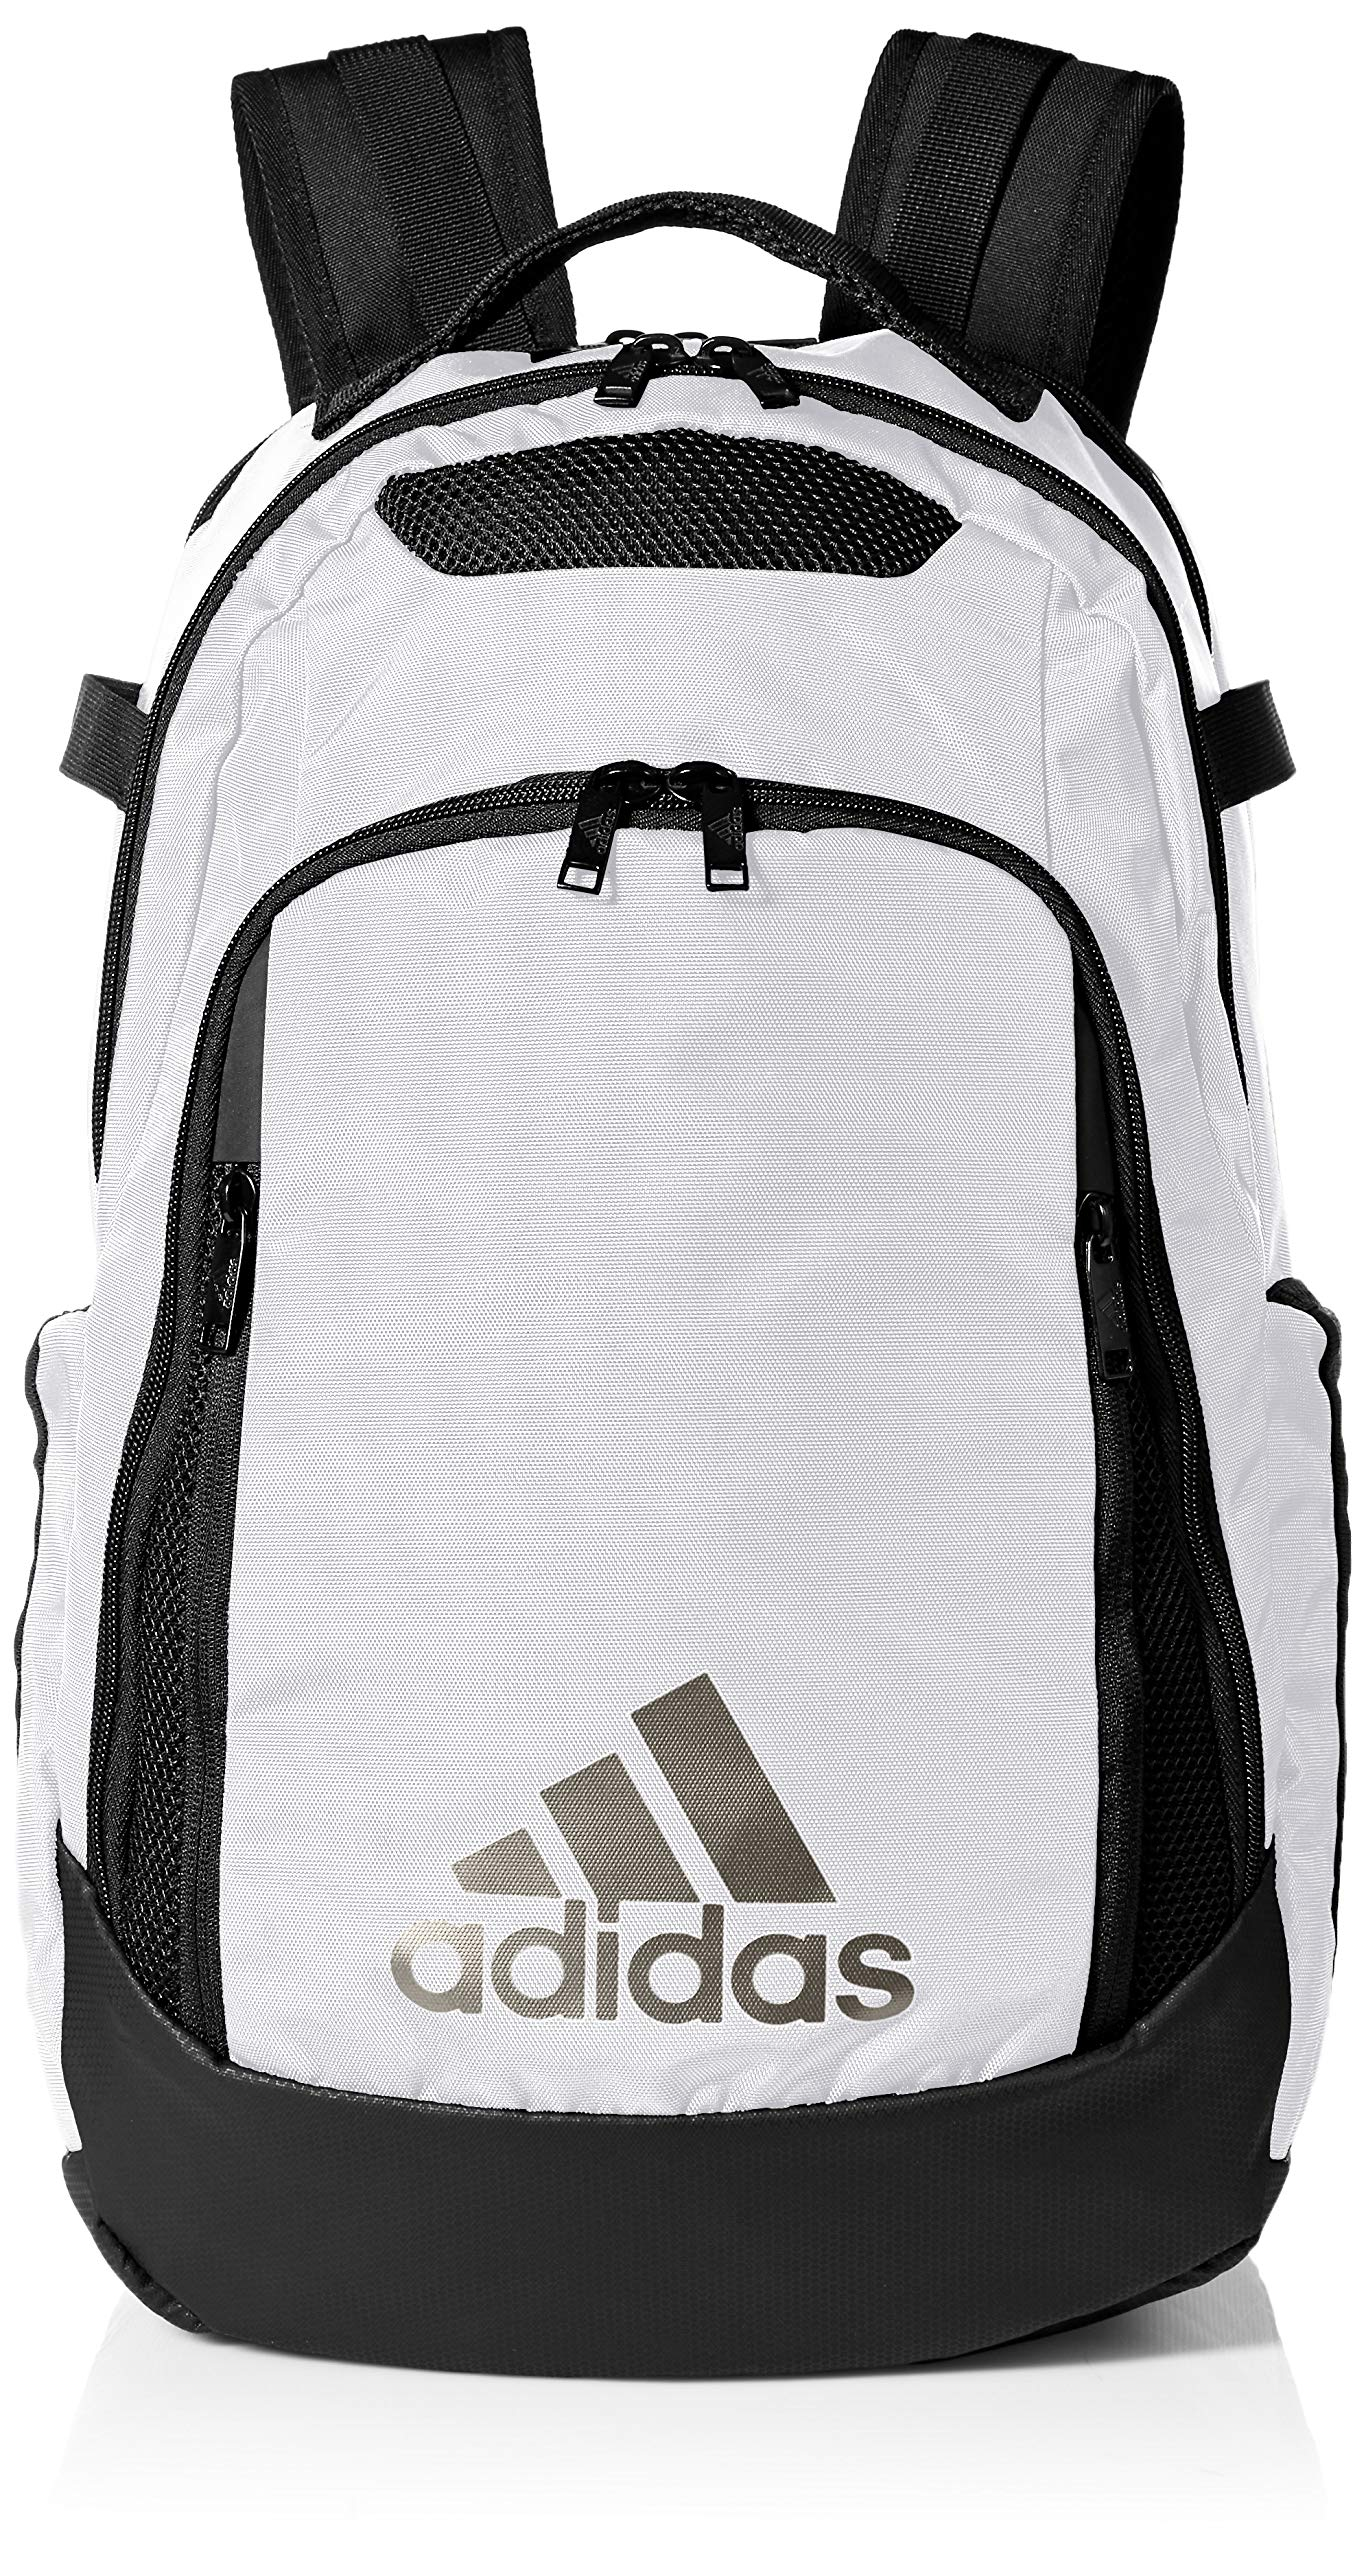 adidas Unisex 5-Star Team Backpack, White/Black, ONE SIZE by adidas